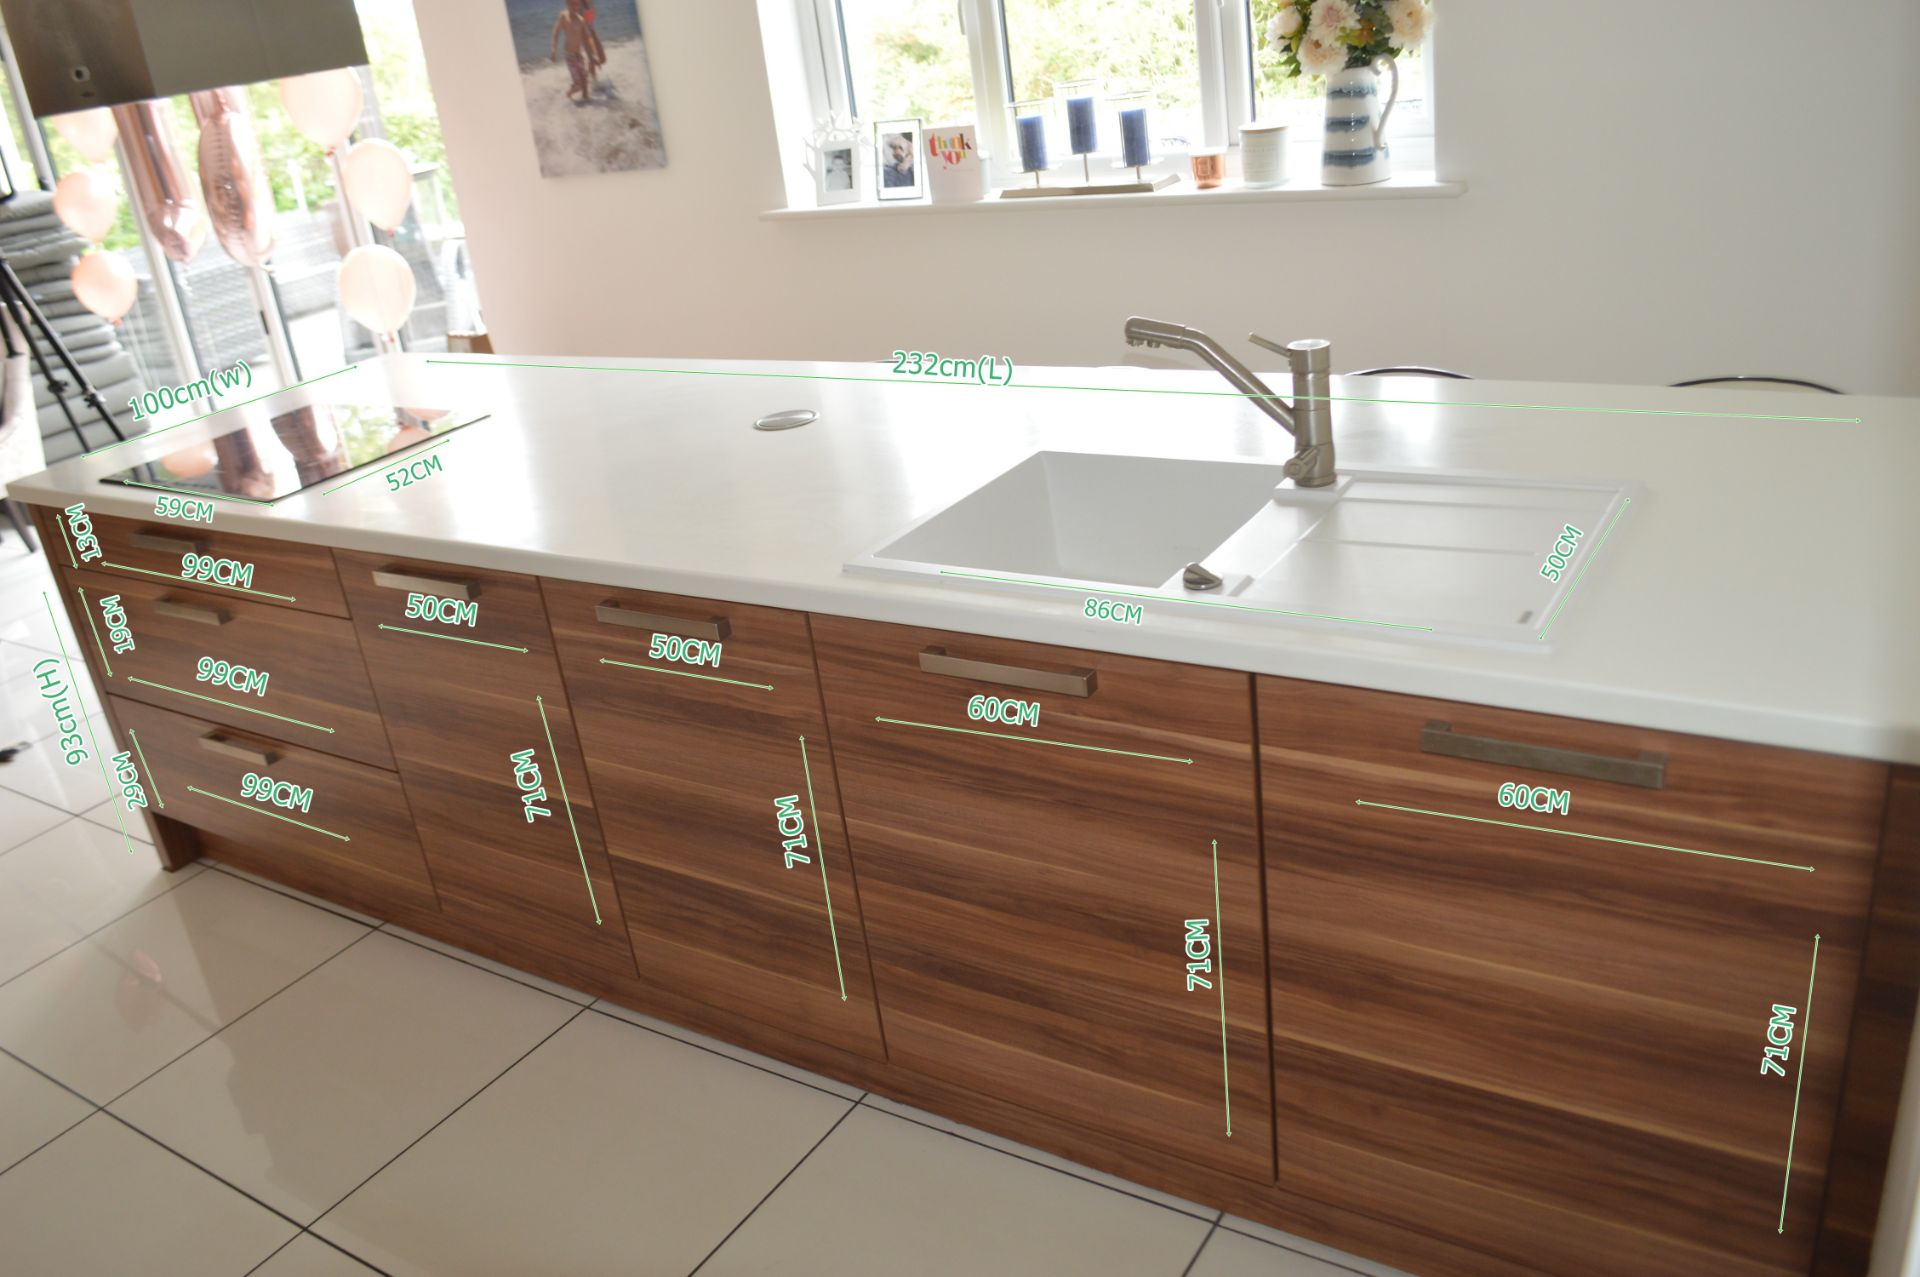 1 x Contemporary Bespoke Fitted Kitchen With Integrated Neff Branded Appliances, Quartz Worktops - Image 11 of 52